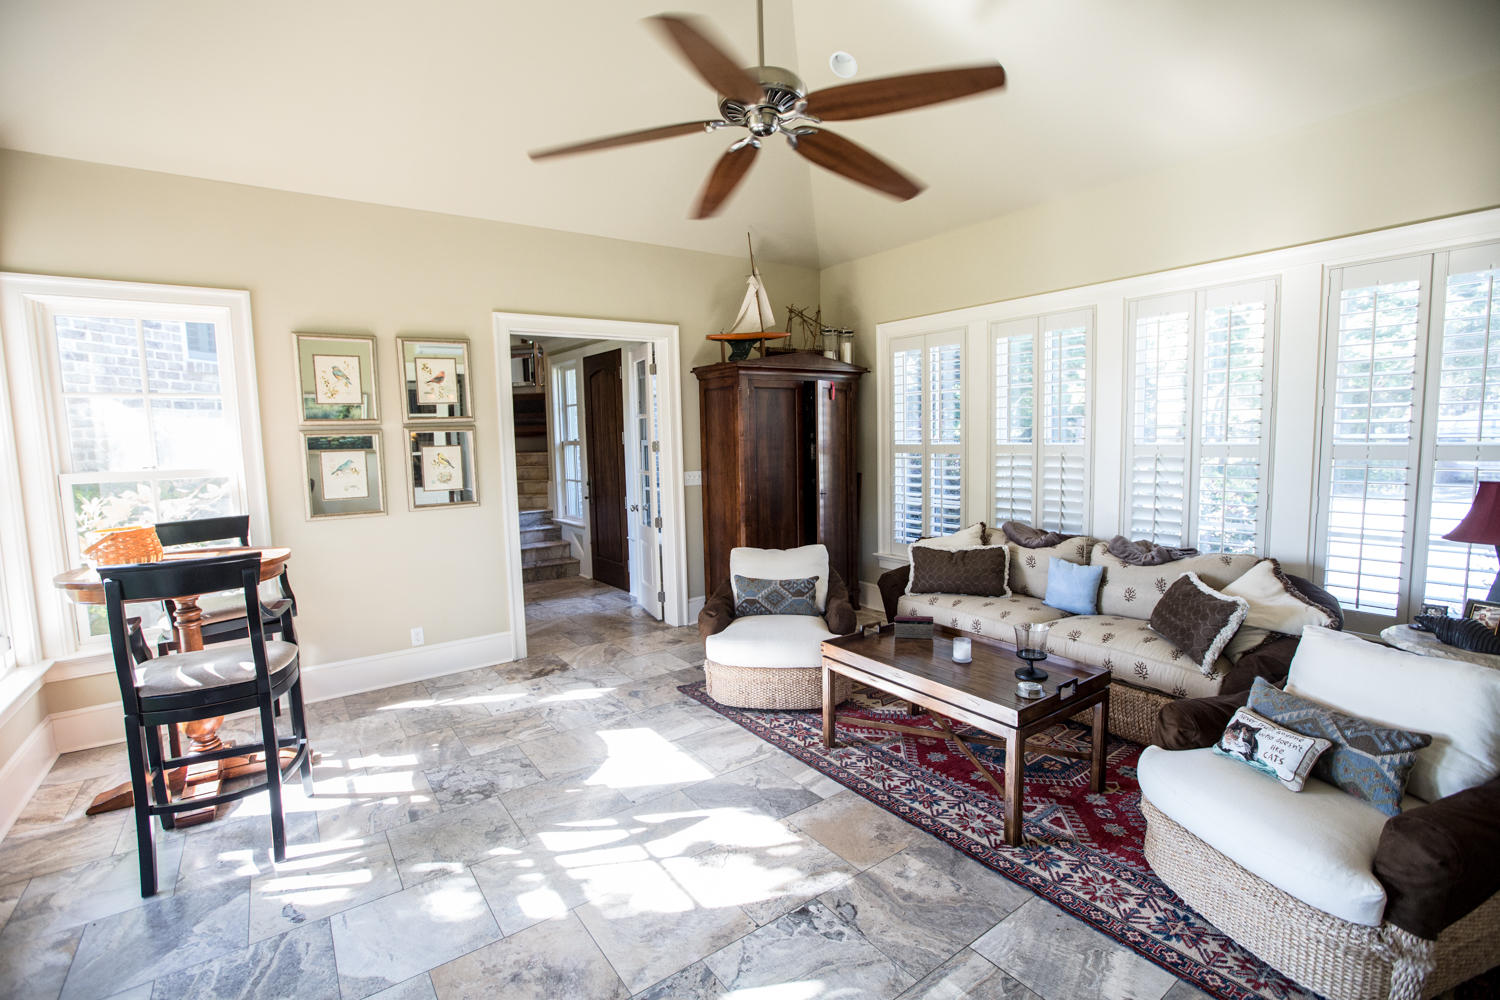 Edgewater Park Homes For Sale - 120 Edgewater, Charleston, SC - 0